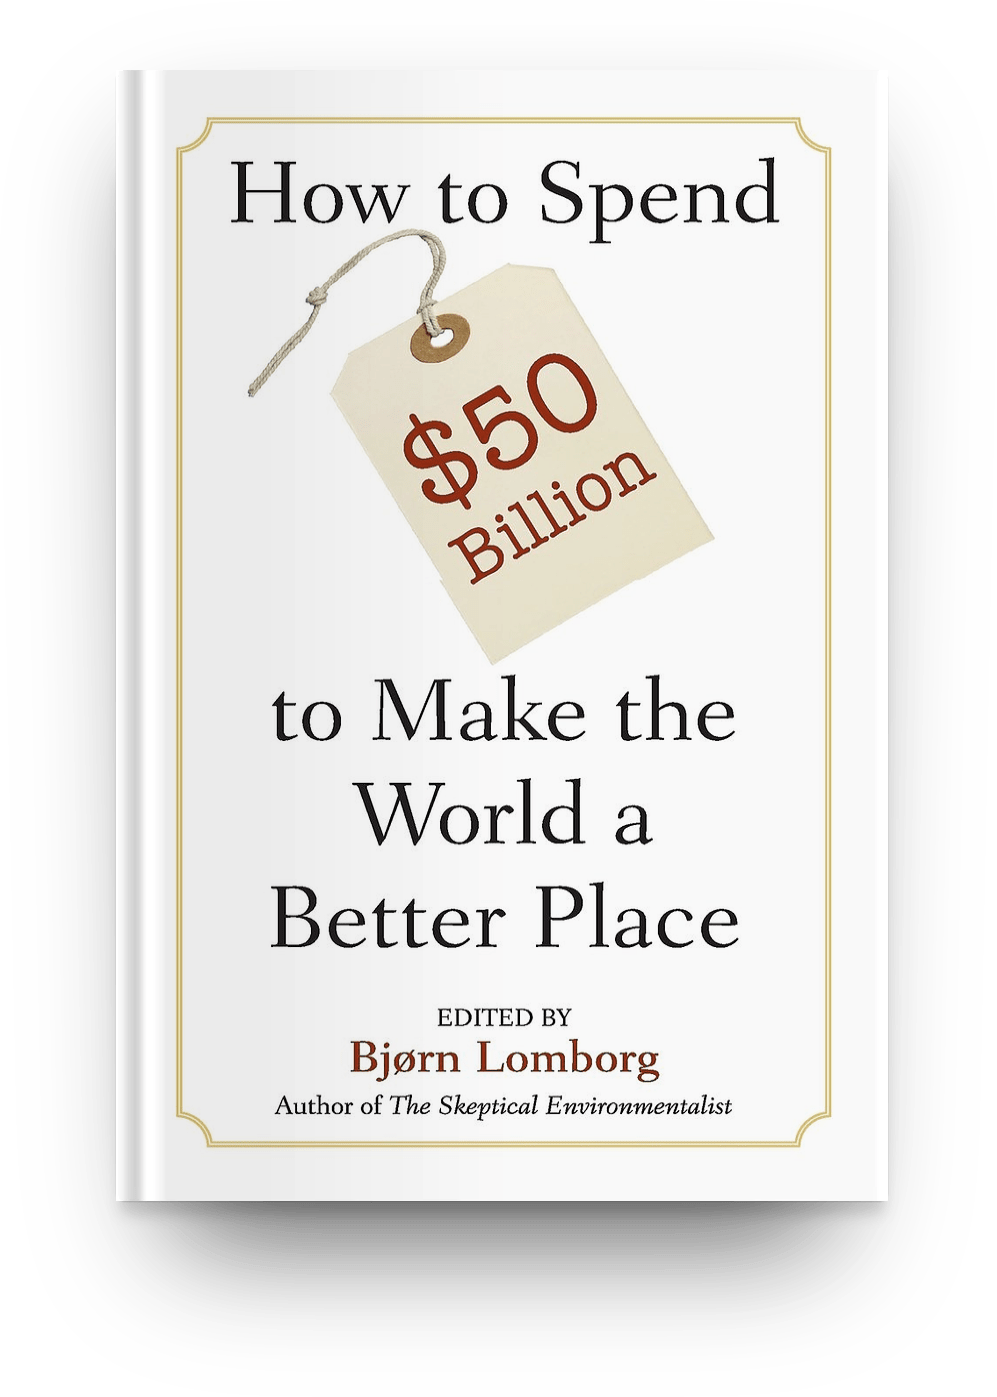 How to Spend $50 Billion to Make the World a Better Place by Björn Lomborg (2006) book cover